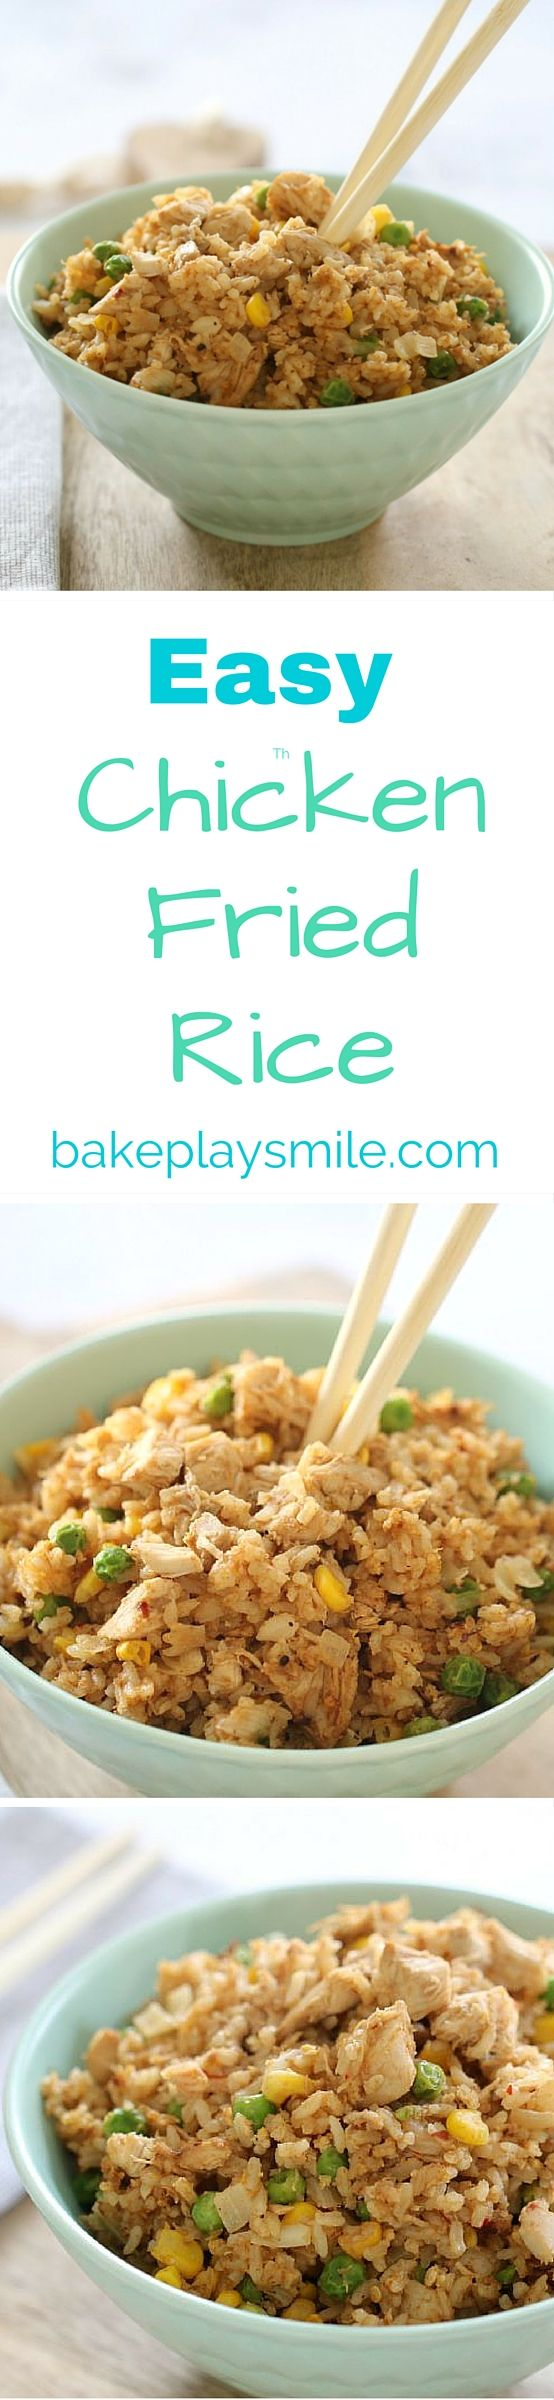 We LOVE this fried rice recipe! It's quick, easy and the best way to use up leftover chicken! This Easy Chicken Fried Rice is one of our go-to midweek dinners   Bake Play Smile #fried #rice #recipe #easy